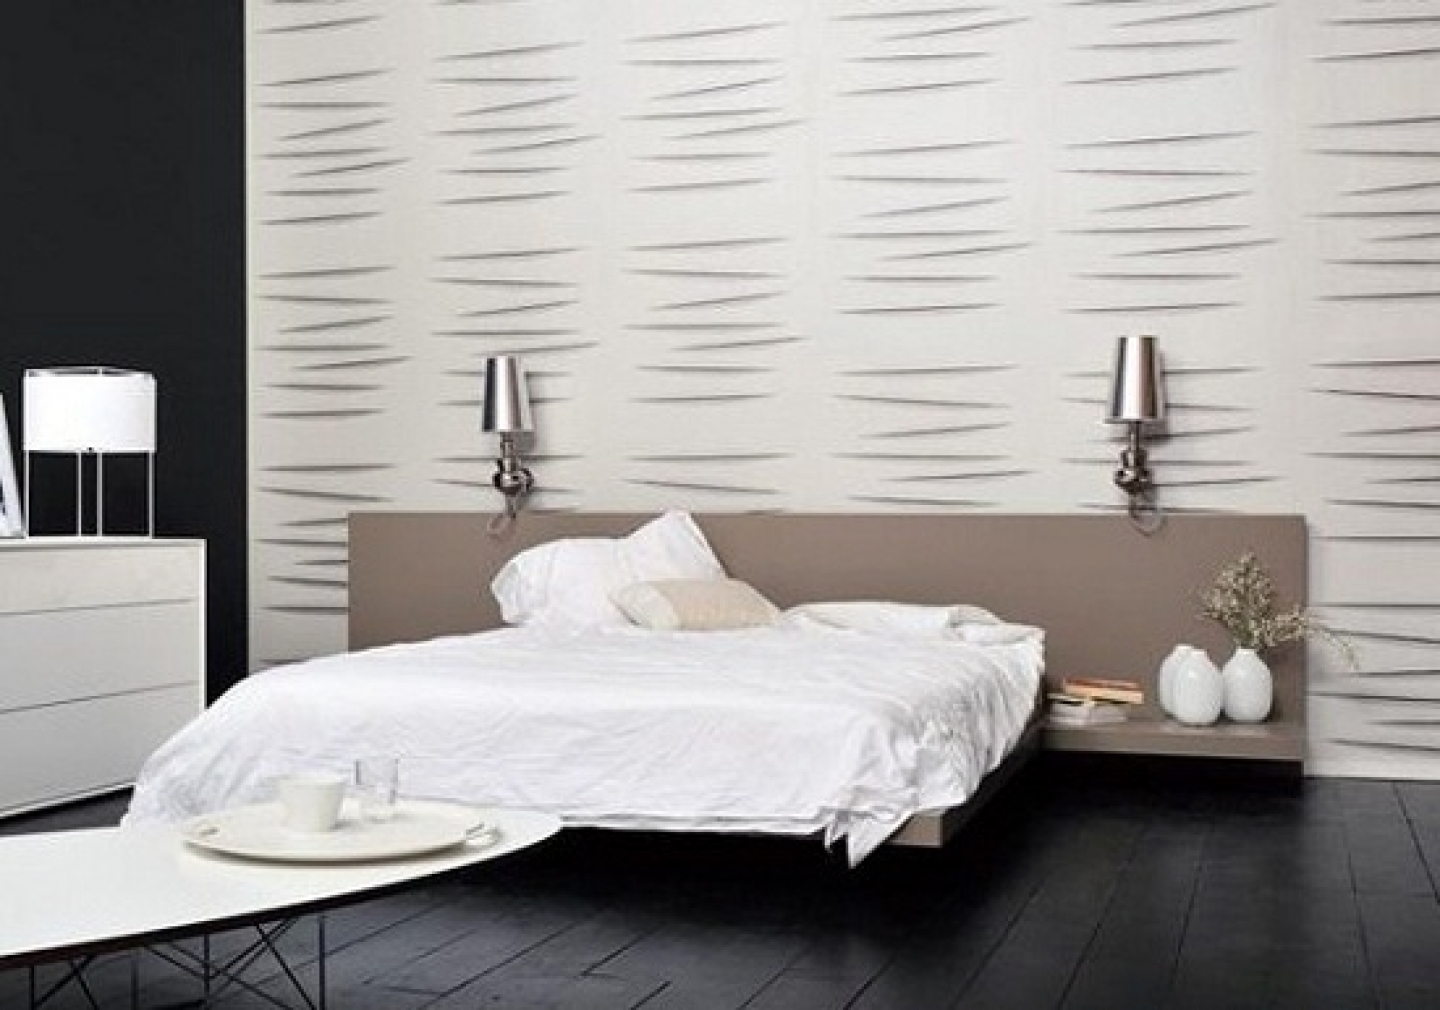 Modern bedroom wallpaper - large and beautiful photos